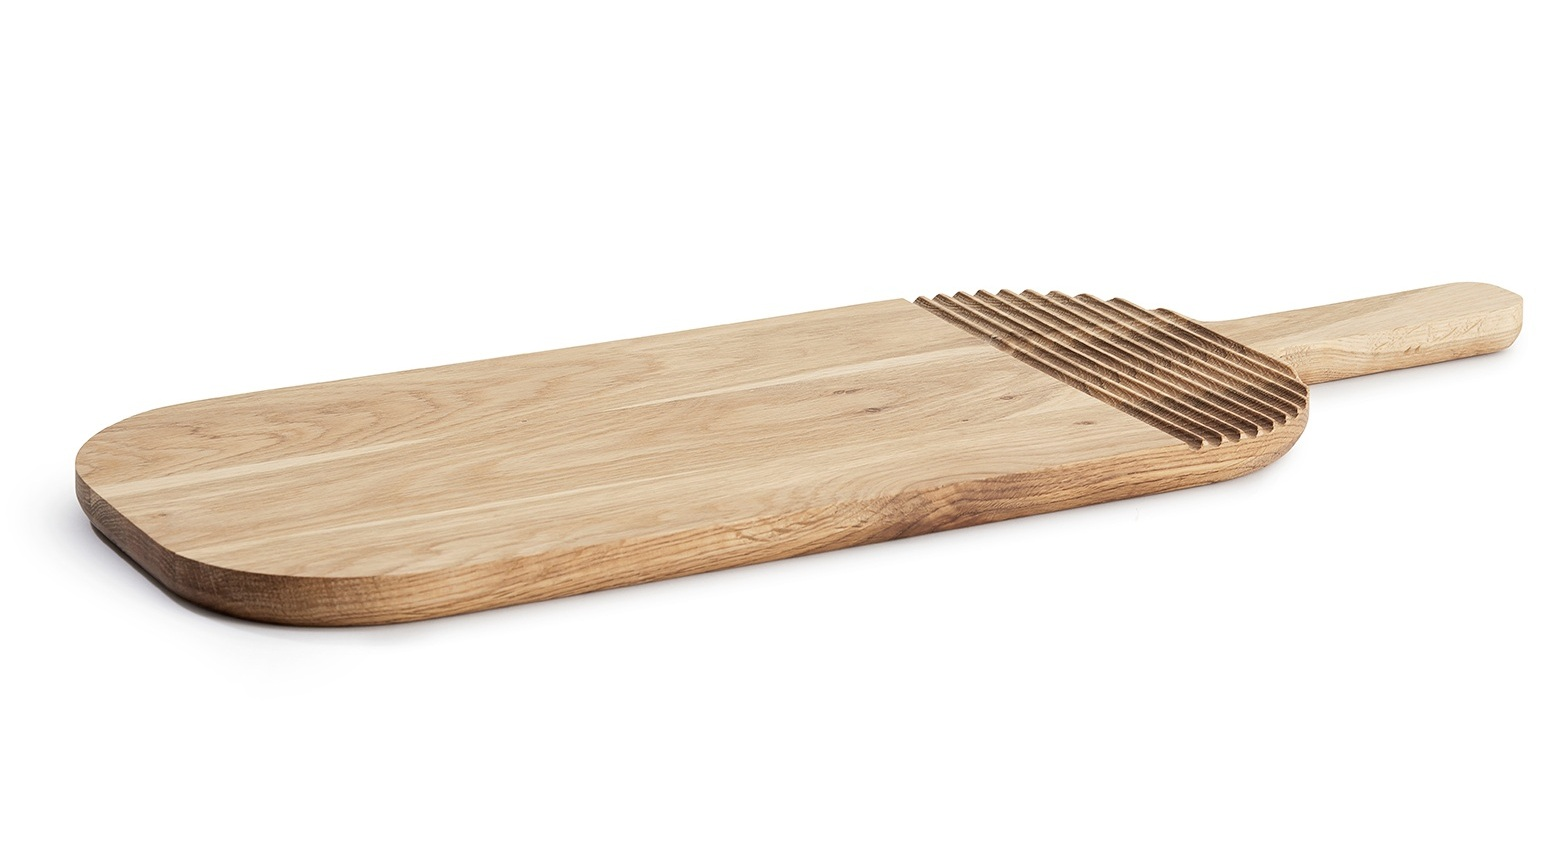 2019 - NATURE, cutting board / Safgaform